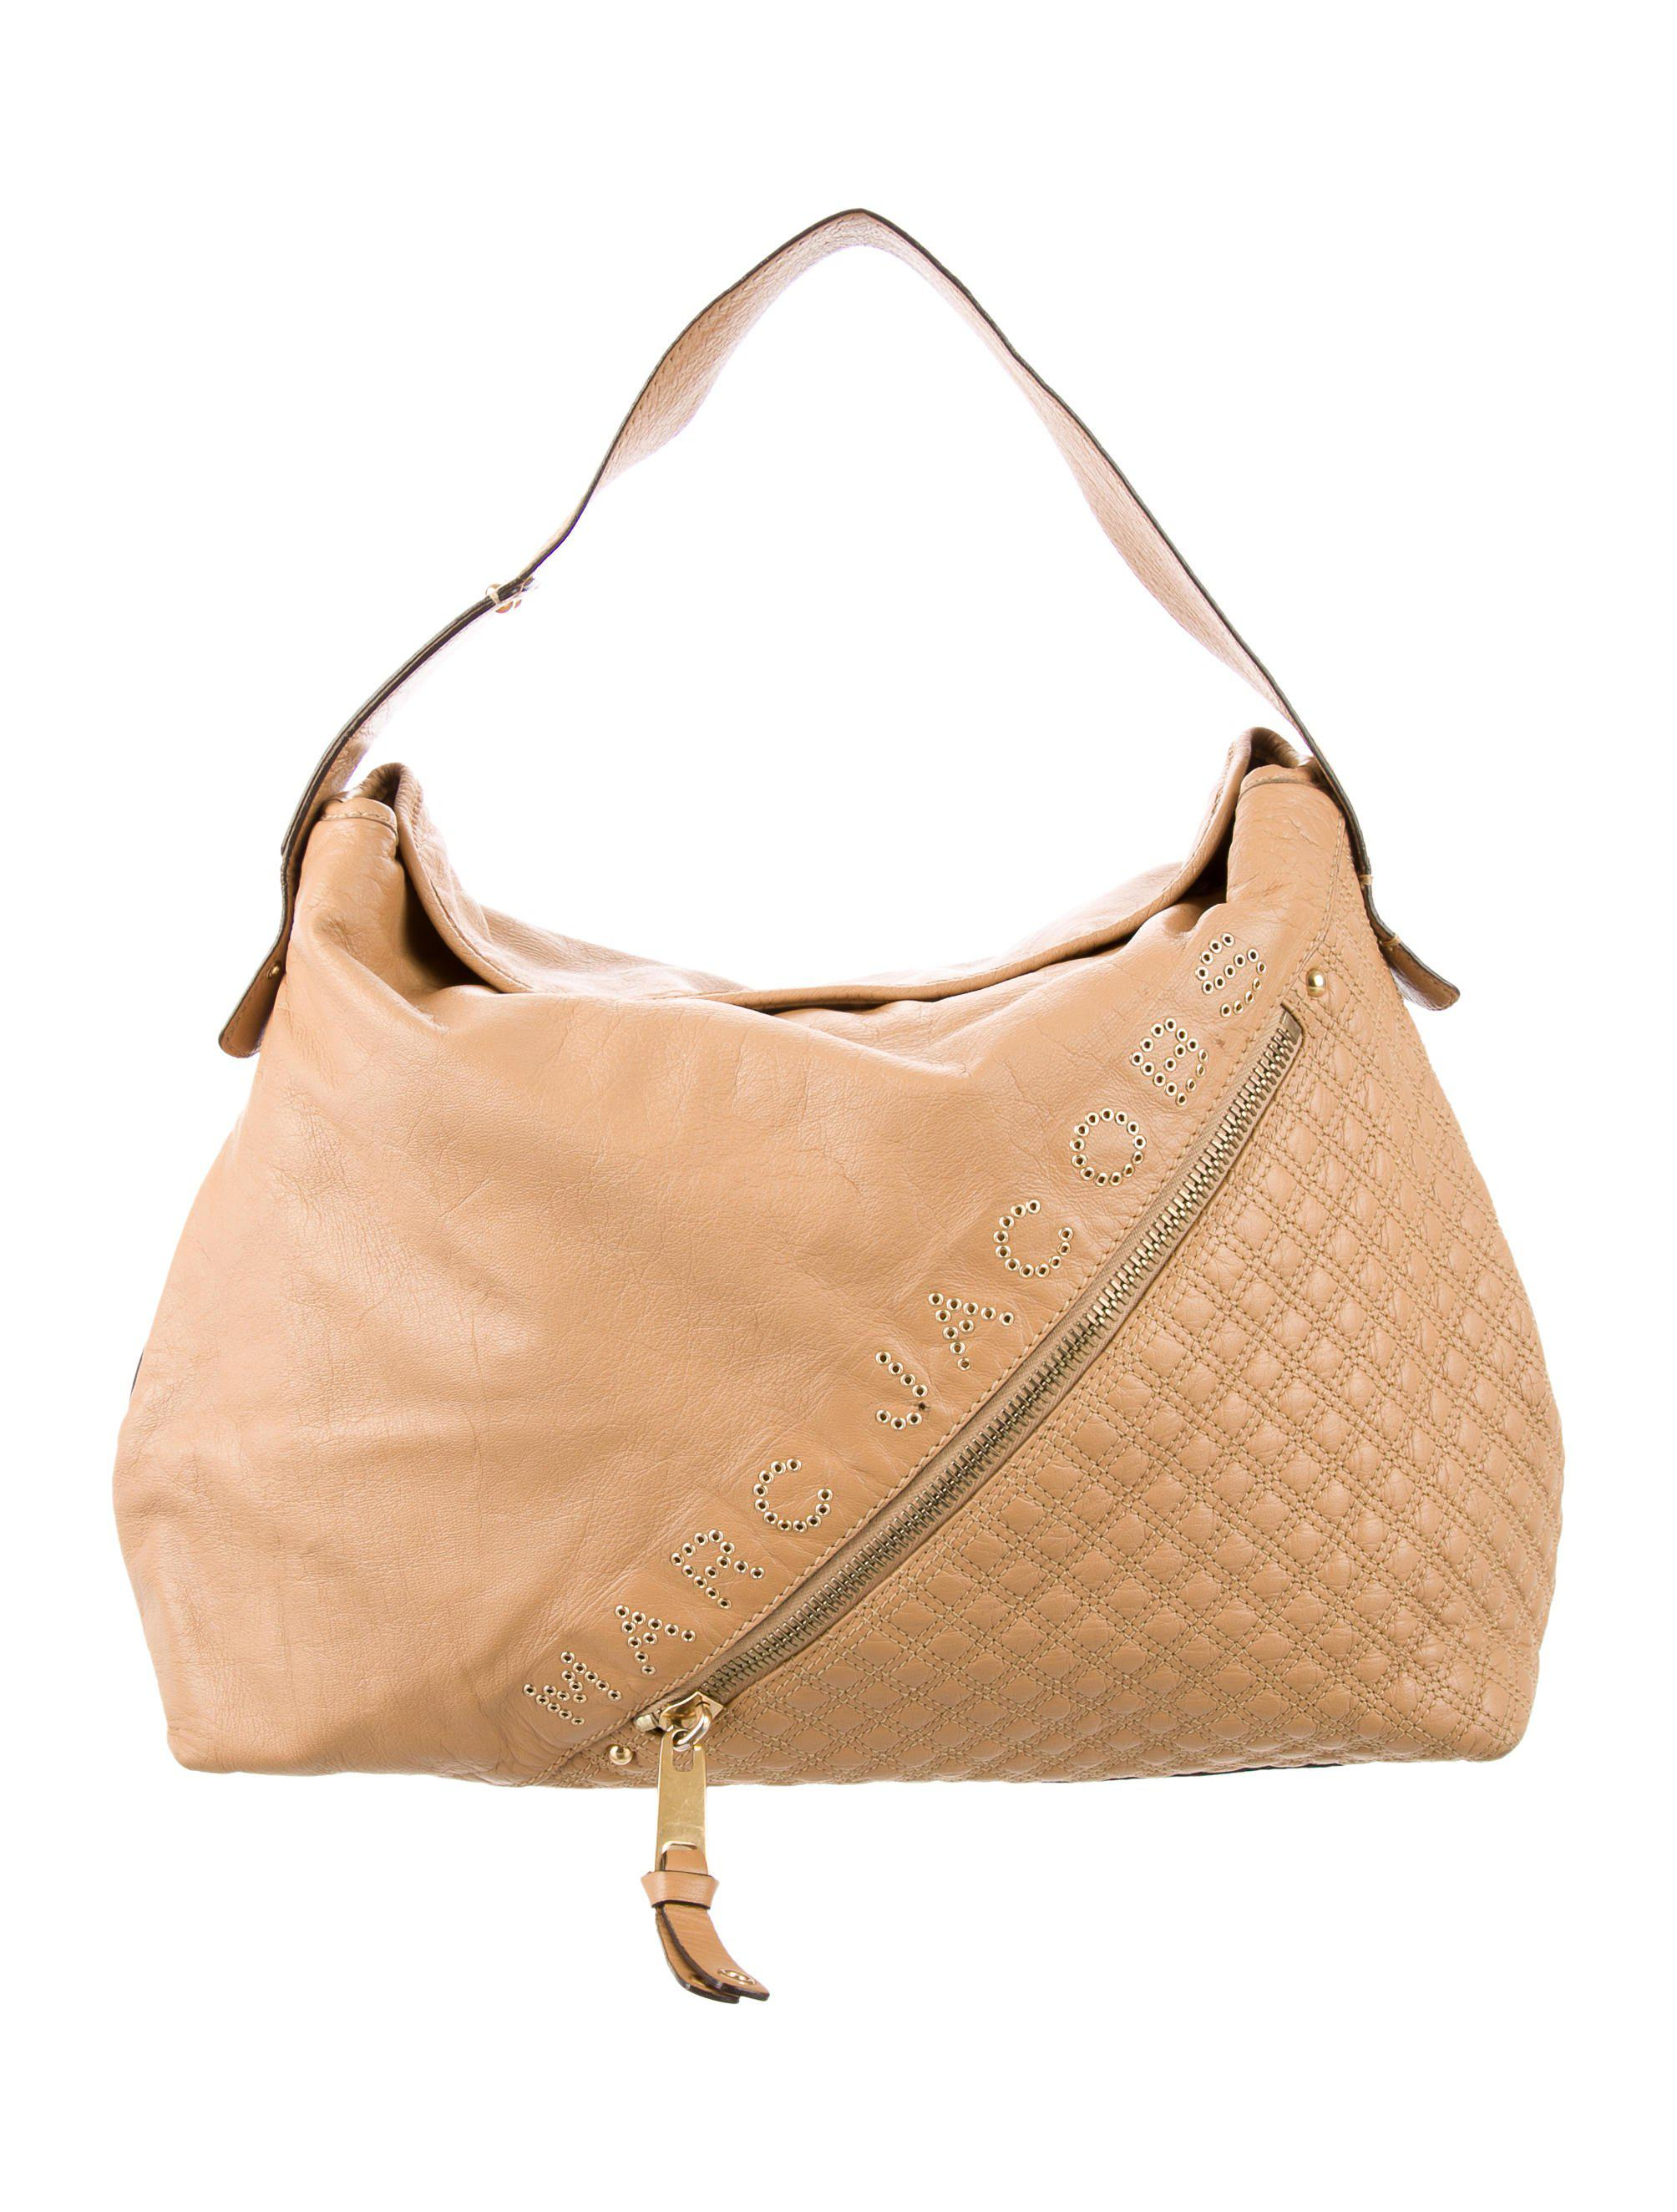 b7bc7d96240f5 Lyst - Marc Jacobs Leather Hobo Bag Gold in Metallic